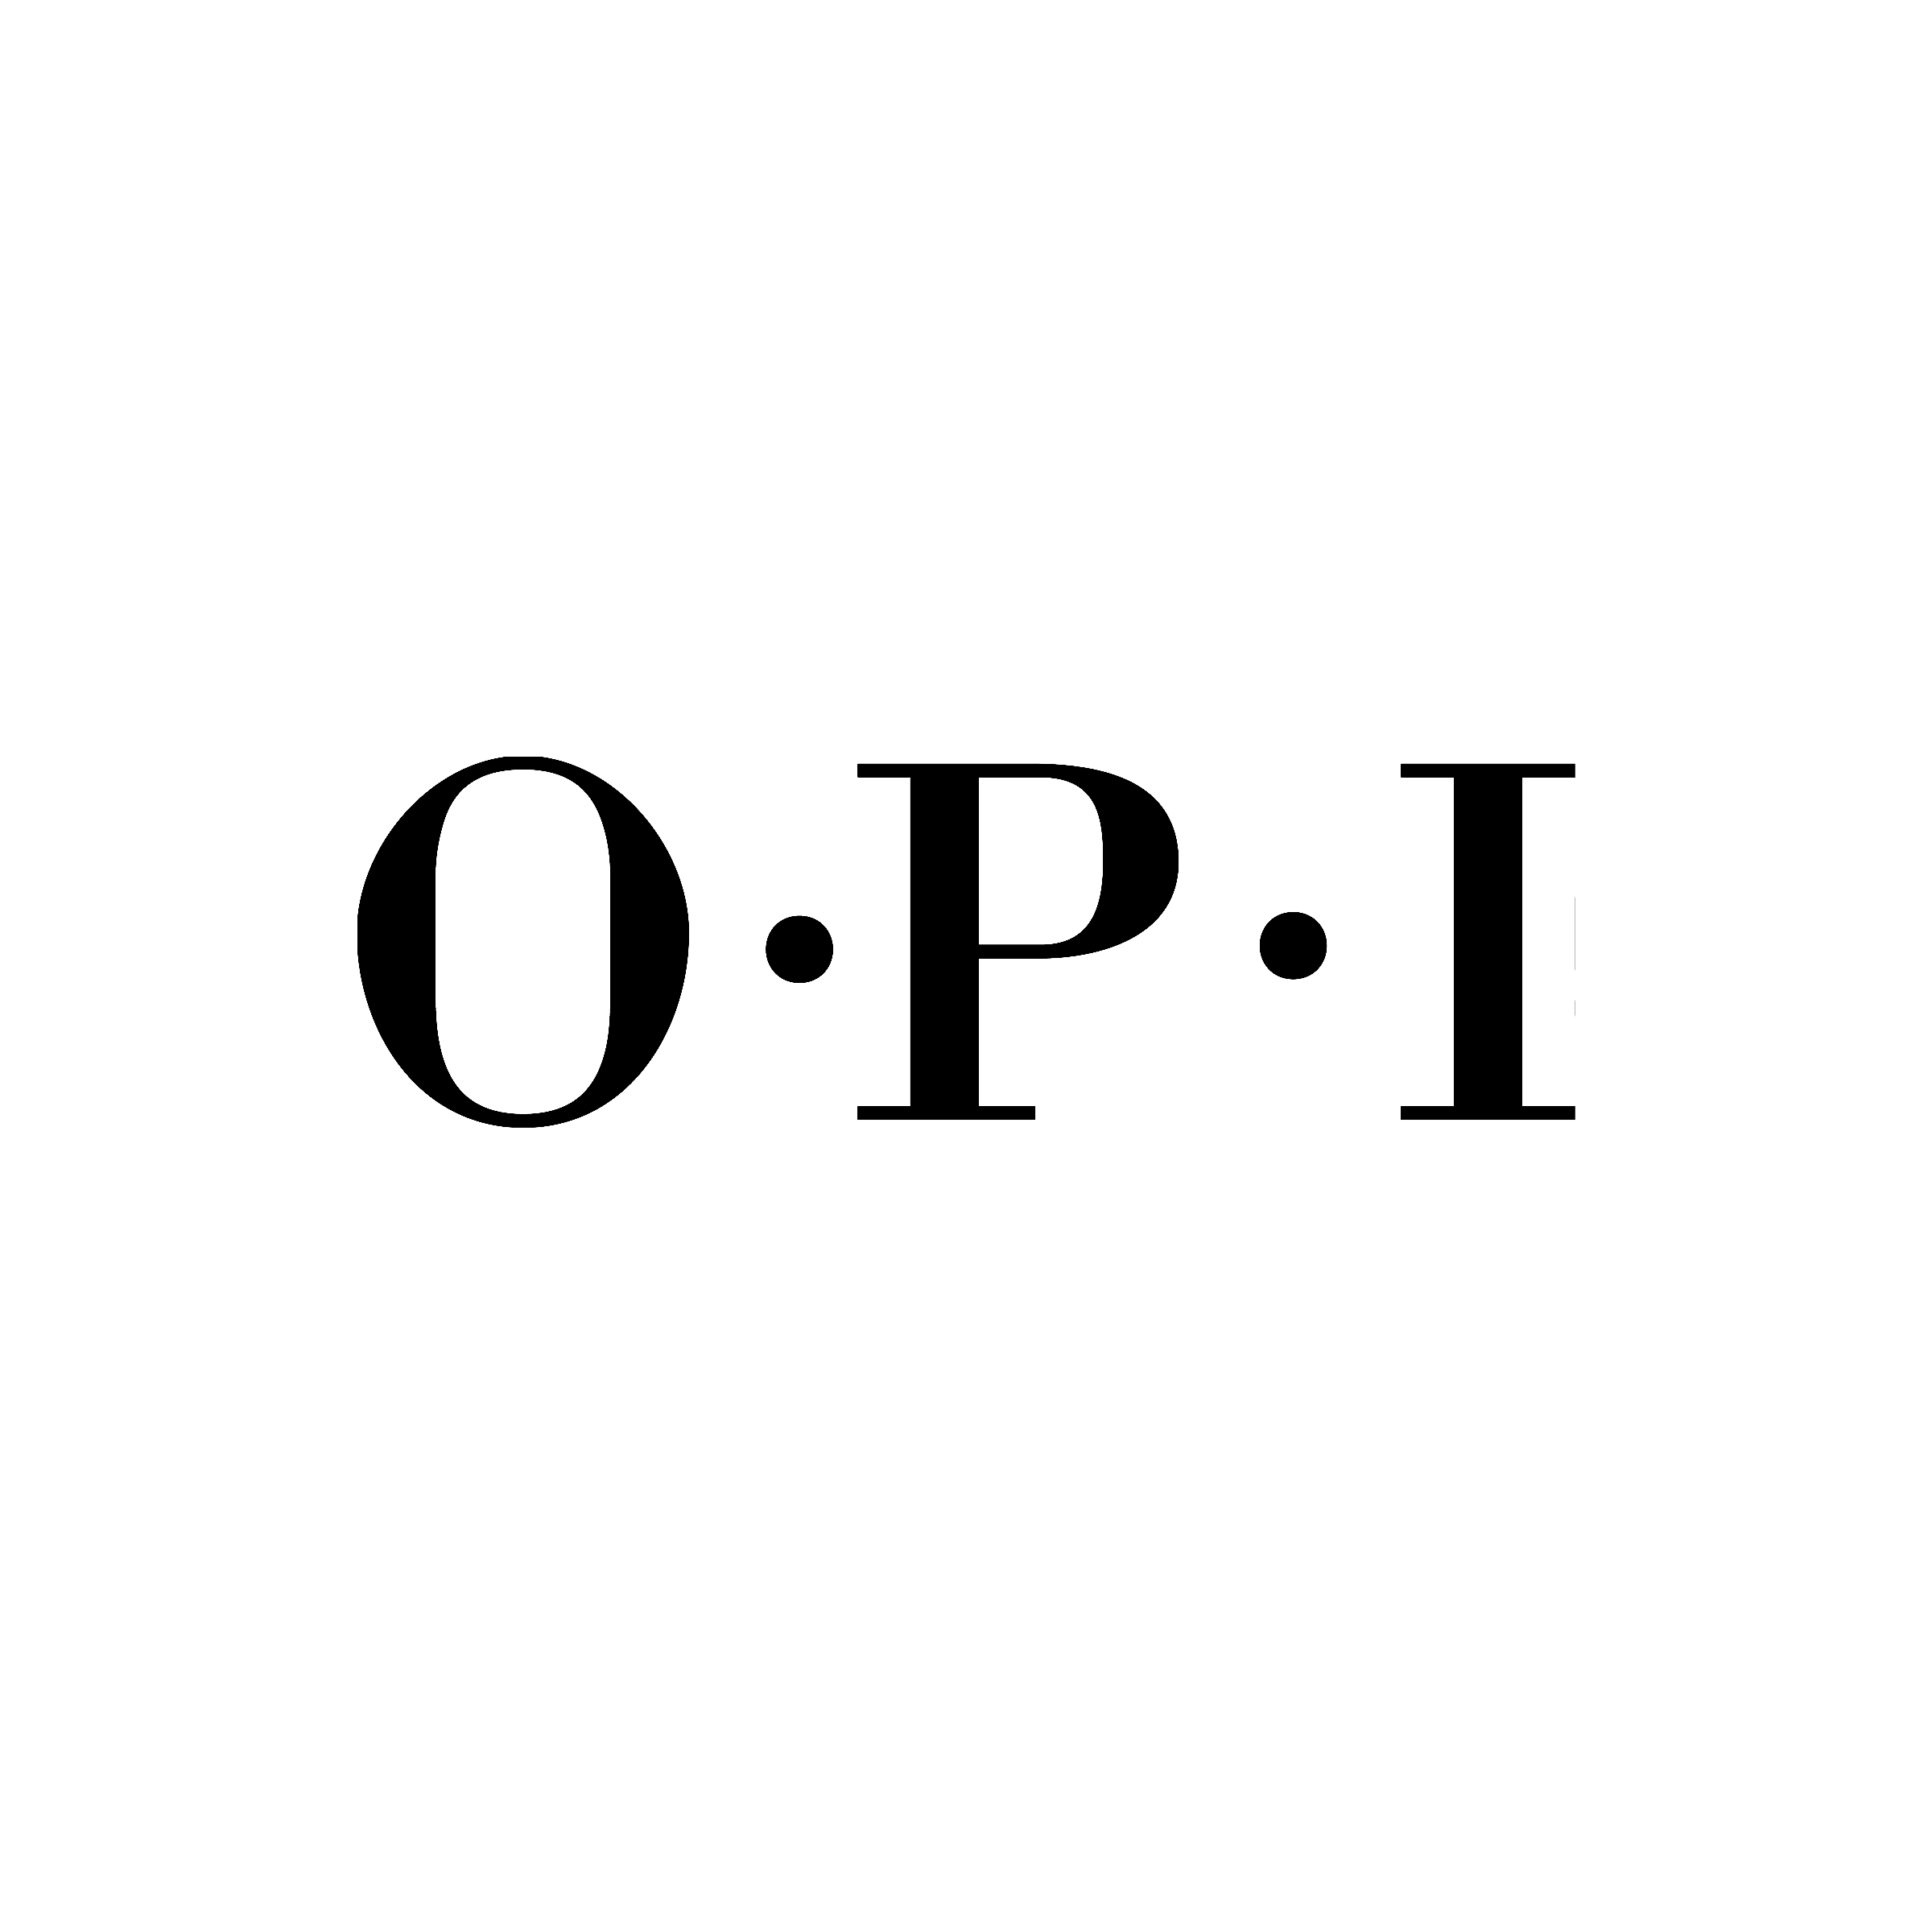 opi-square.png